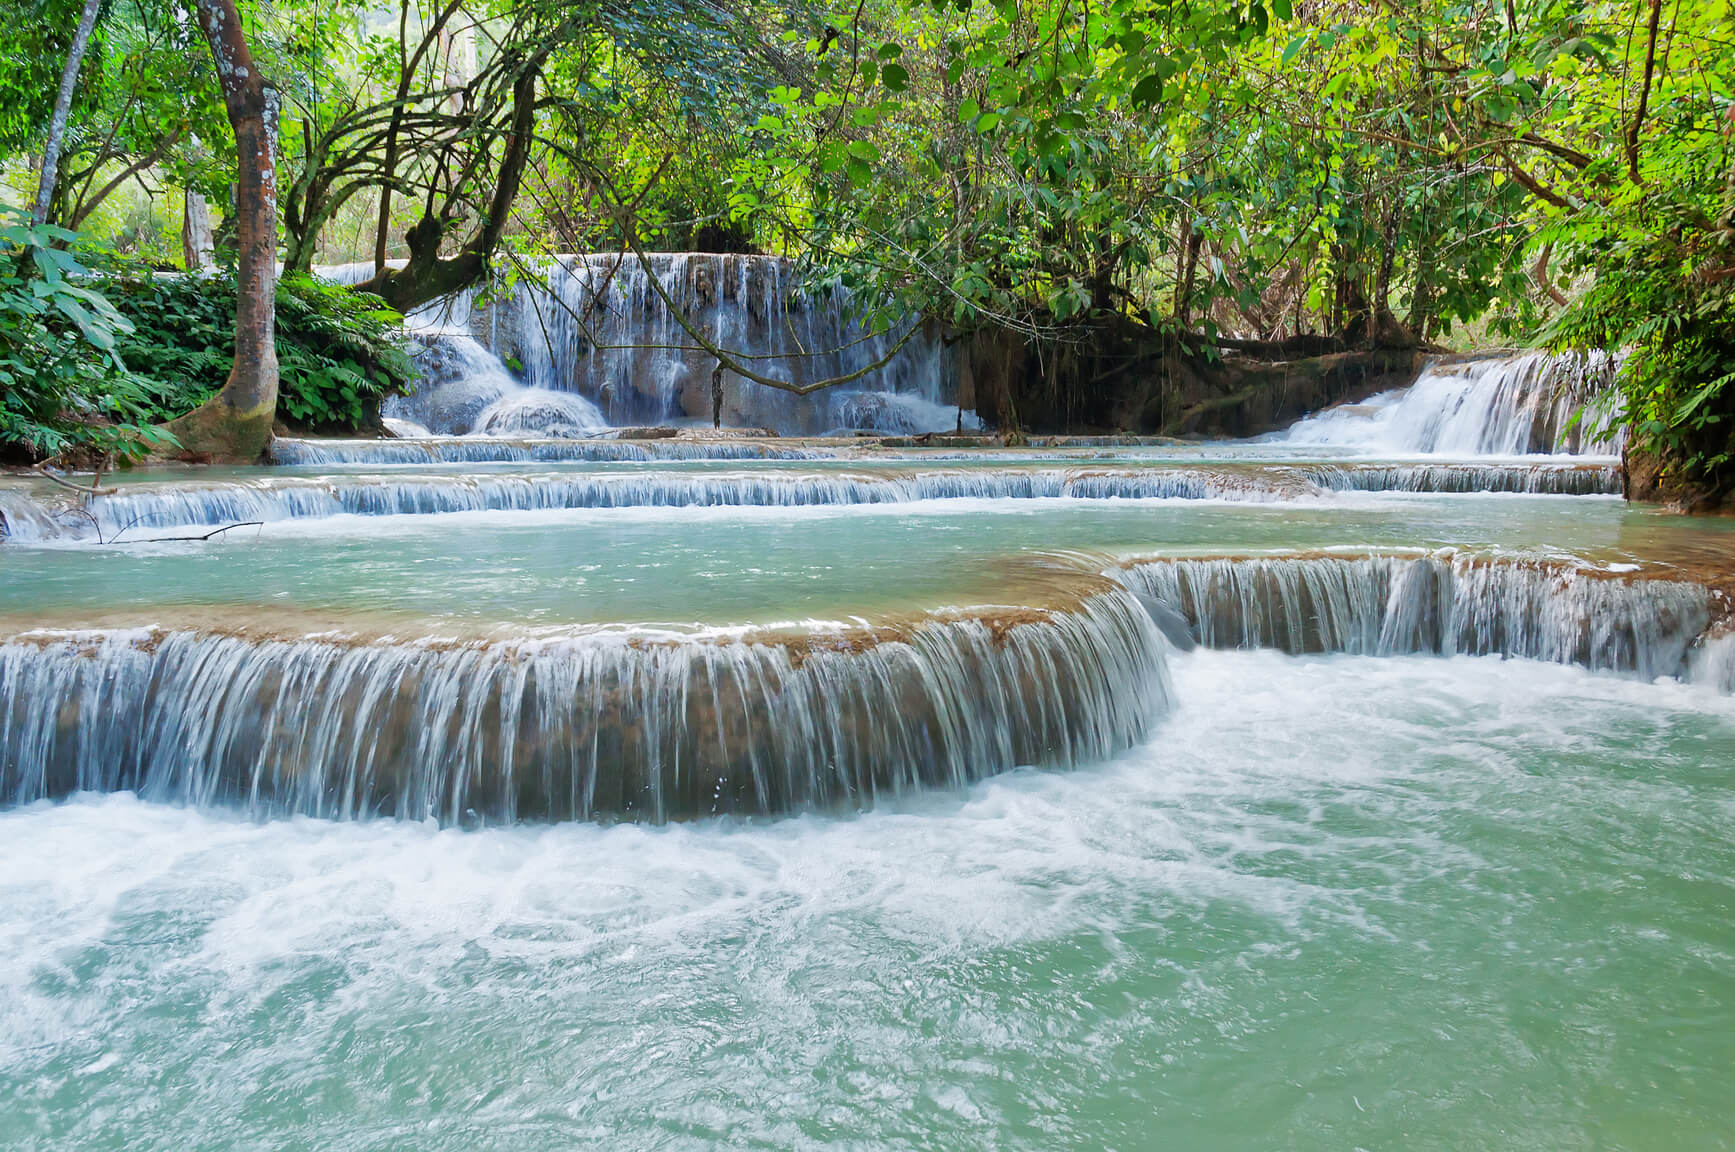 Sivienna: EXPIRED** Vienna, Austria To Laos For Only €347 Roundtrip